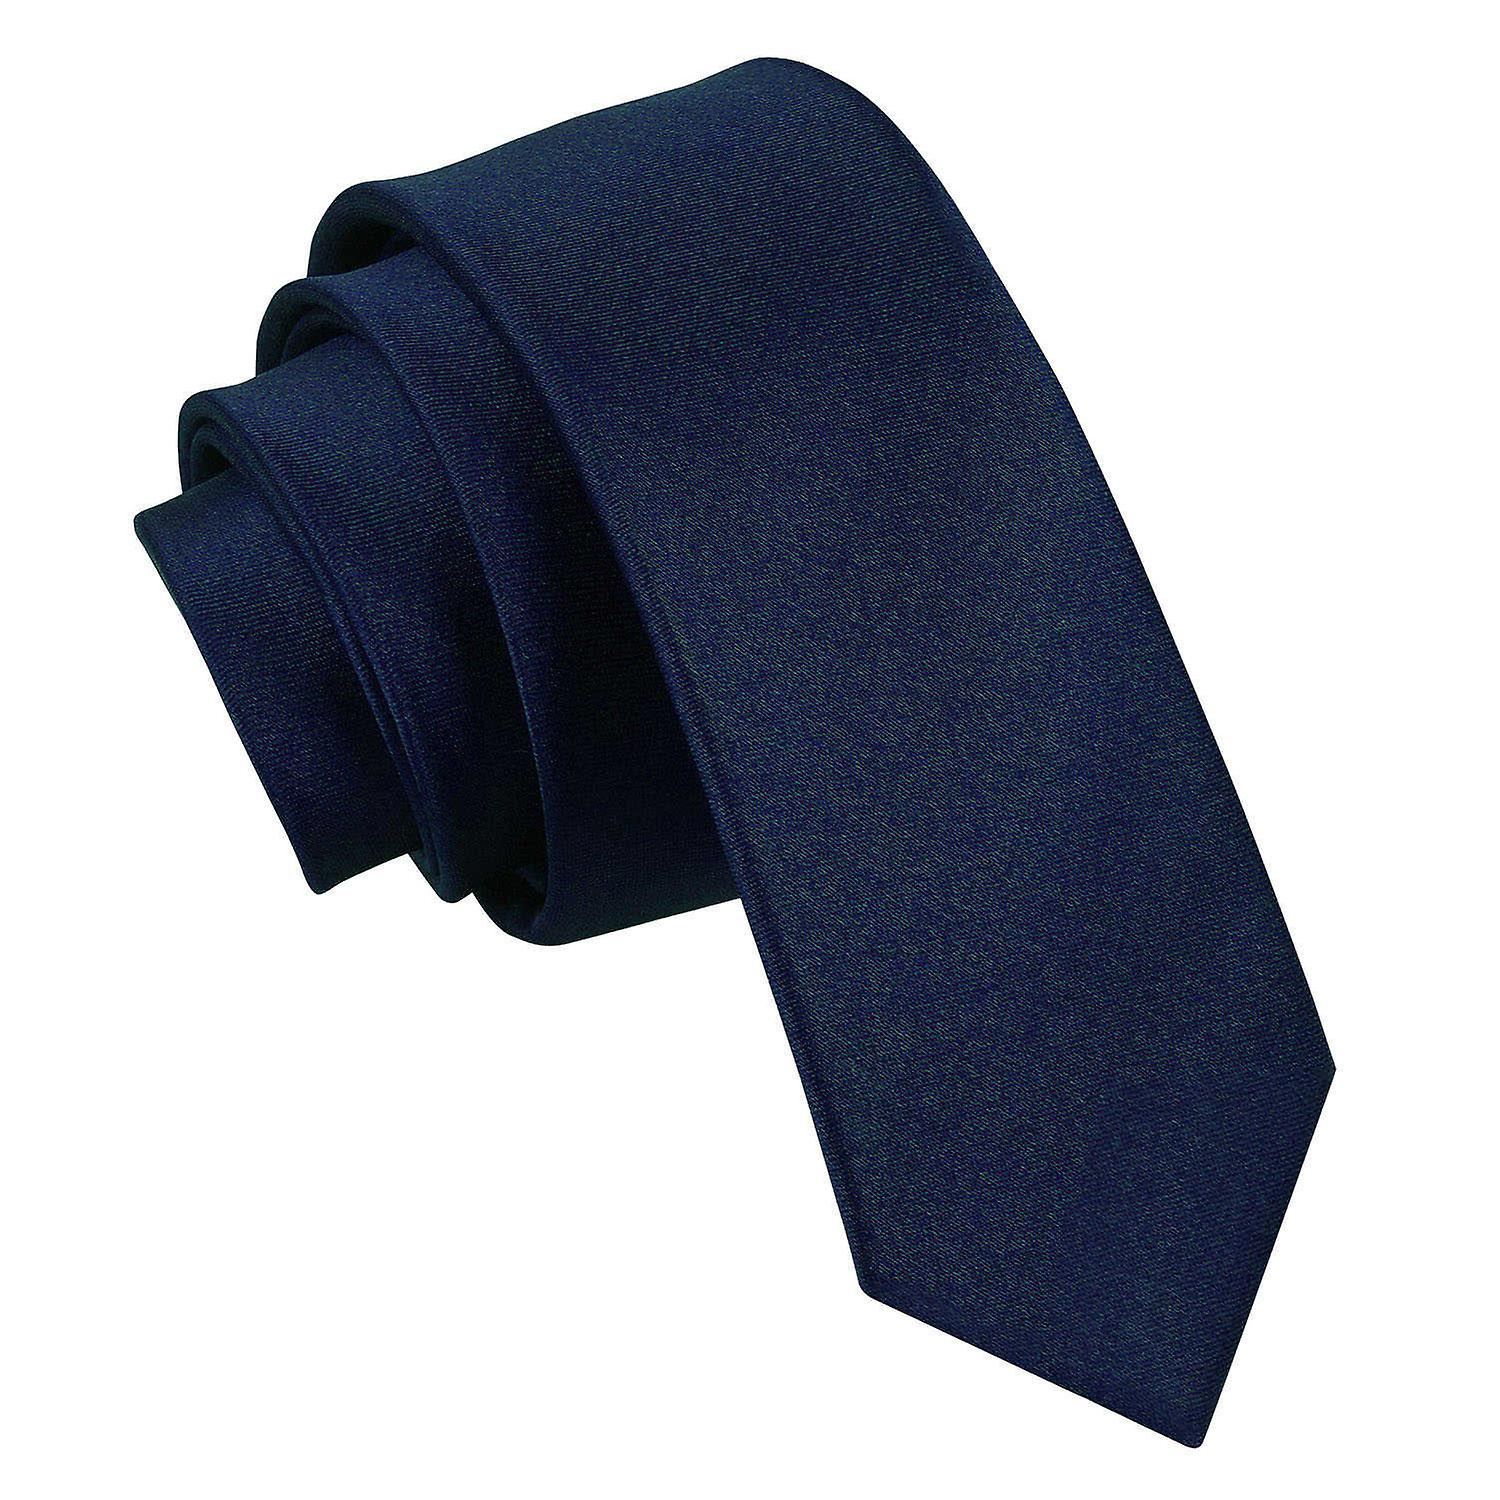 Plain Navy Blue Satin Skinny Tie